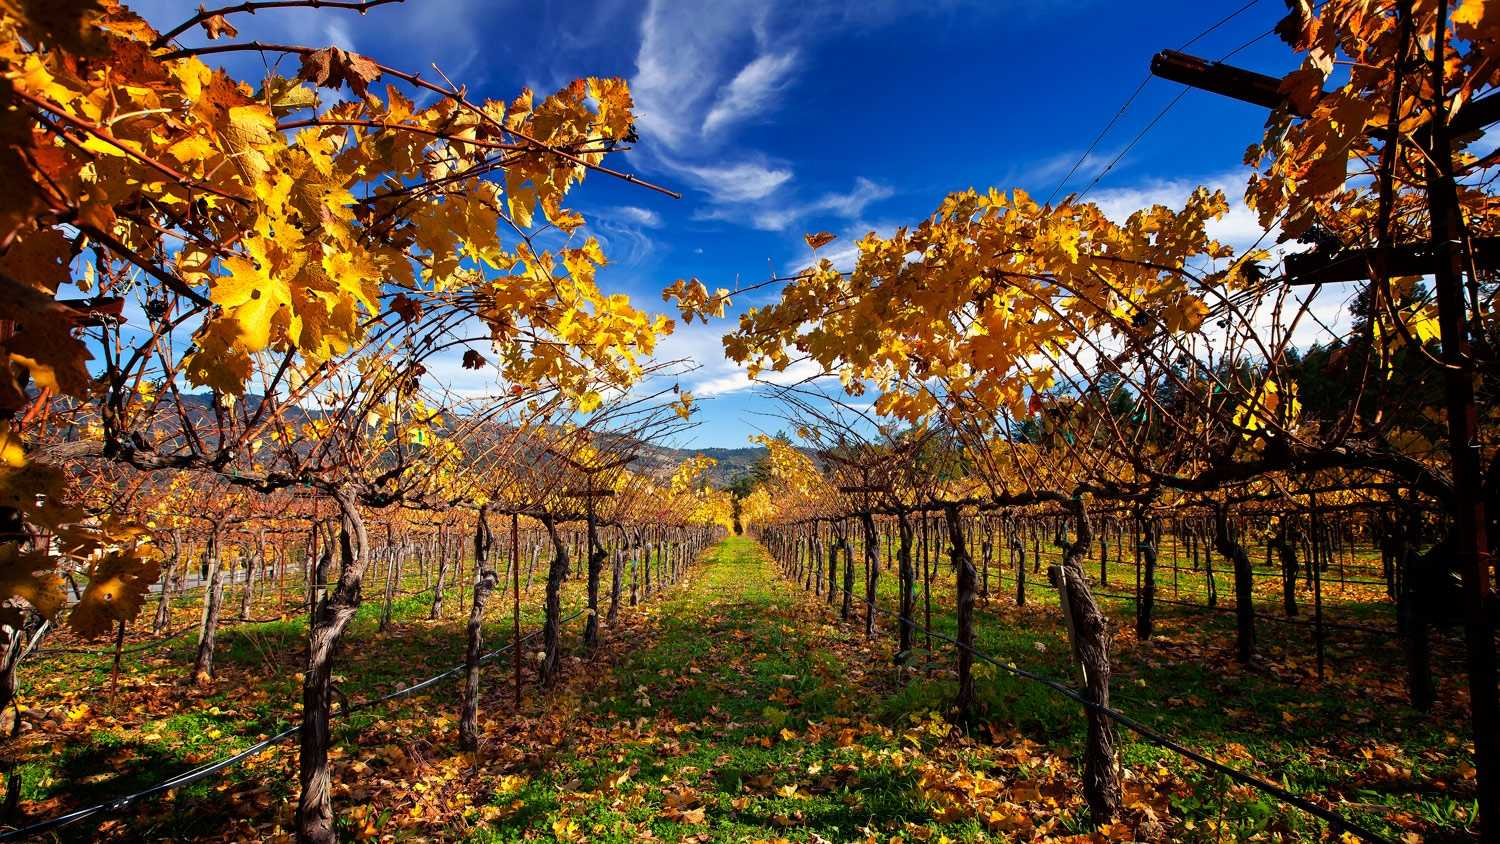 9. Sulfur is the most commonly used pesticide in Napa Valley and is certified for use in organic farming.